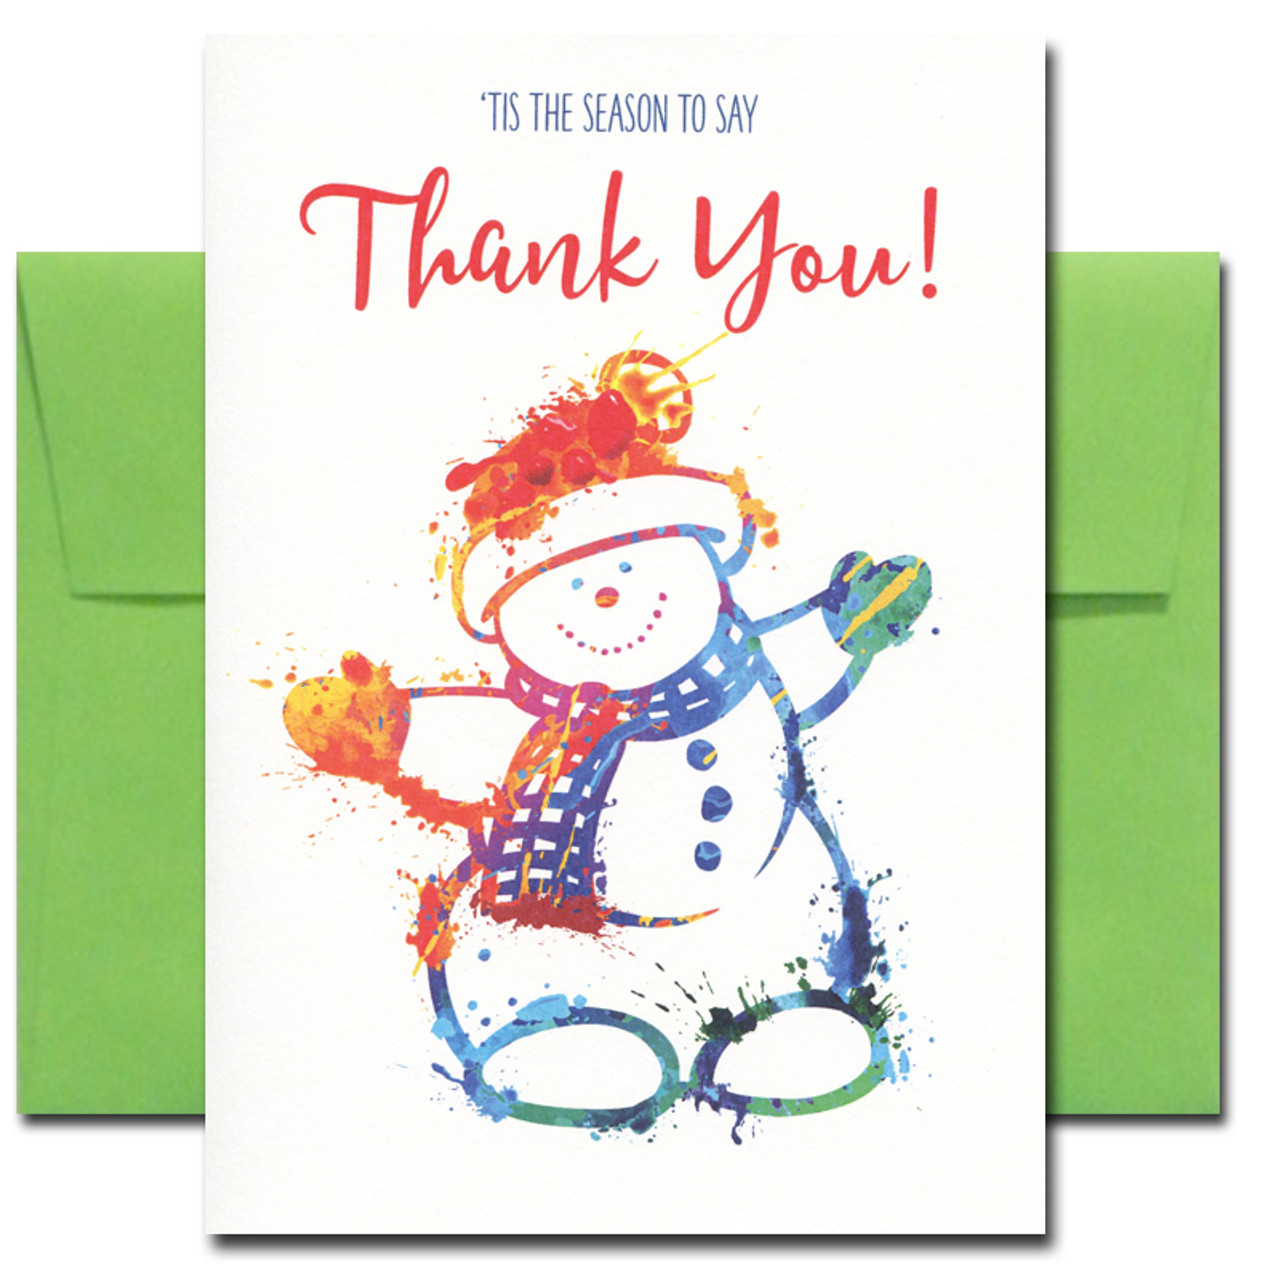 Thank You Card: 'Tis the Season has a brightly colored snowman design and the words, 'Tis the season to say Thank You